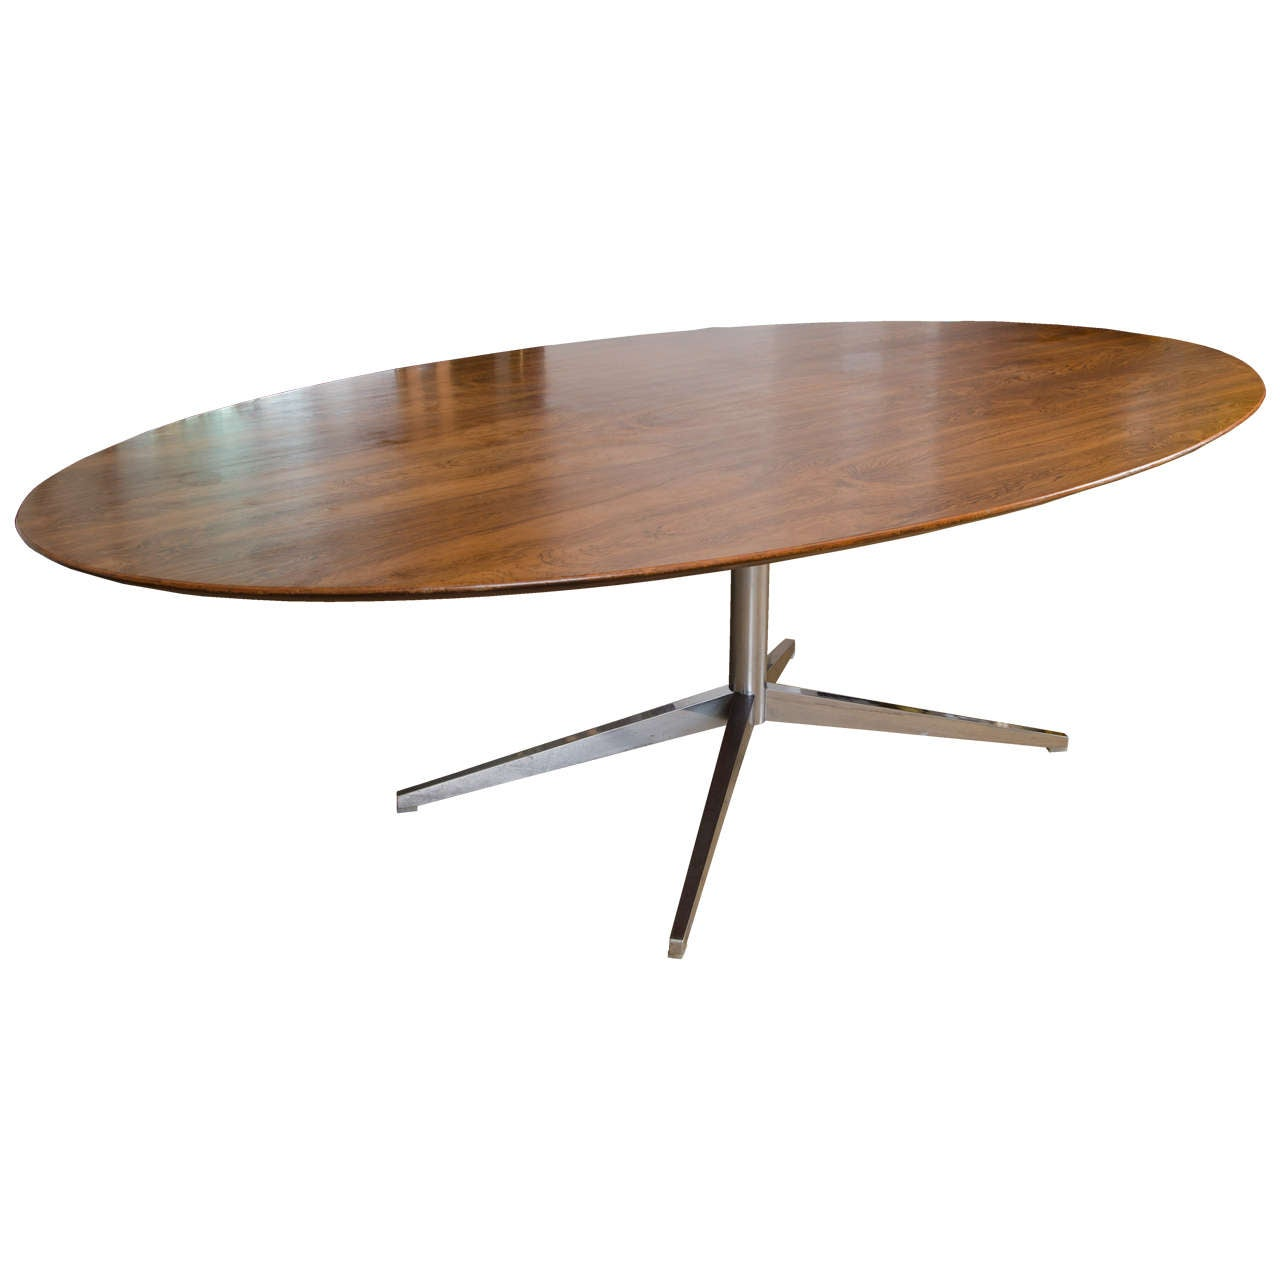 1960s Dining Table By Florence Knoll For Sale At 1stdibs